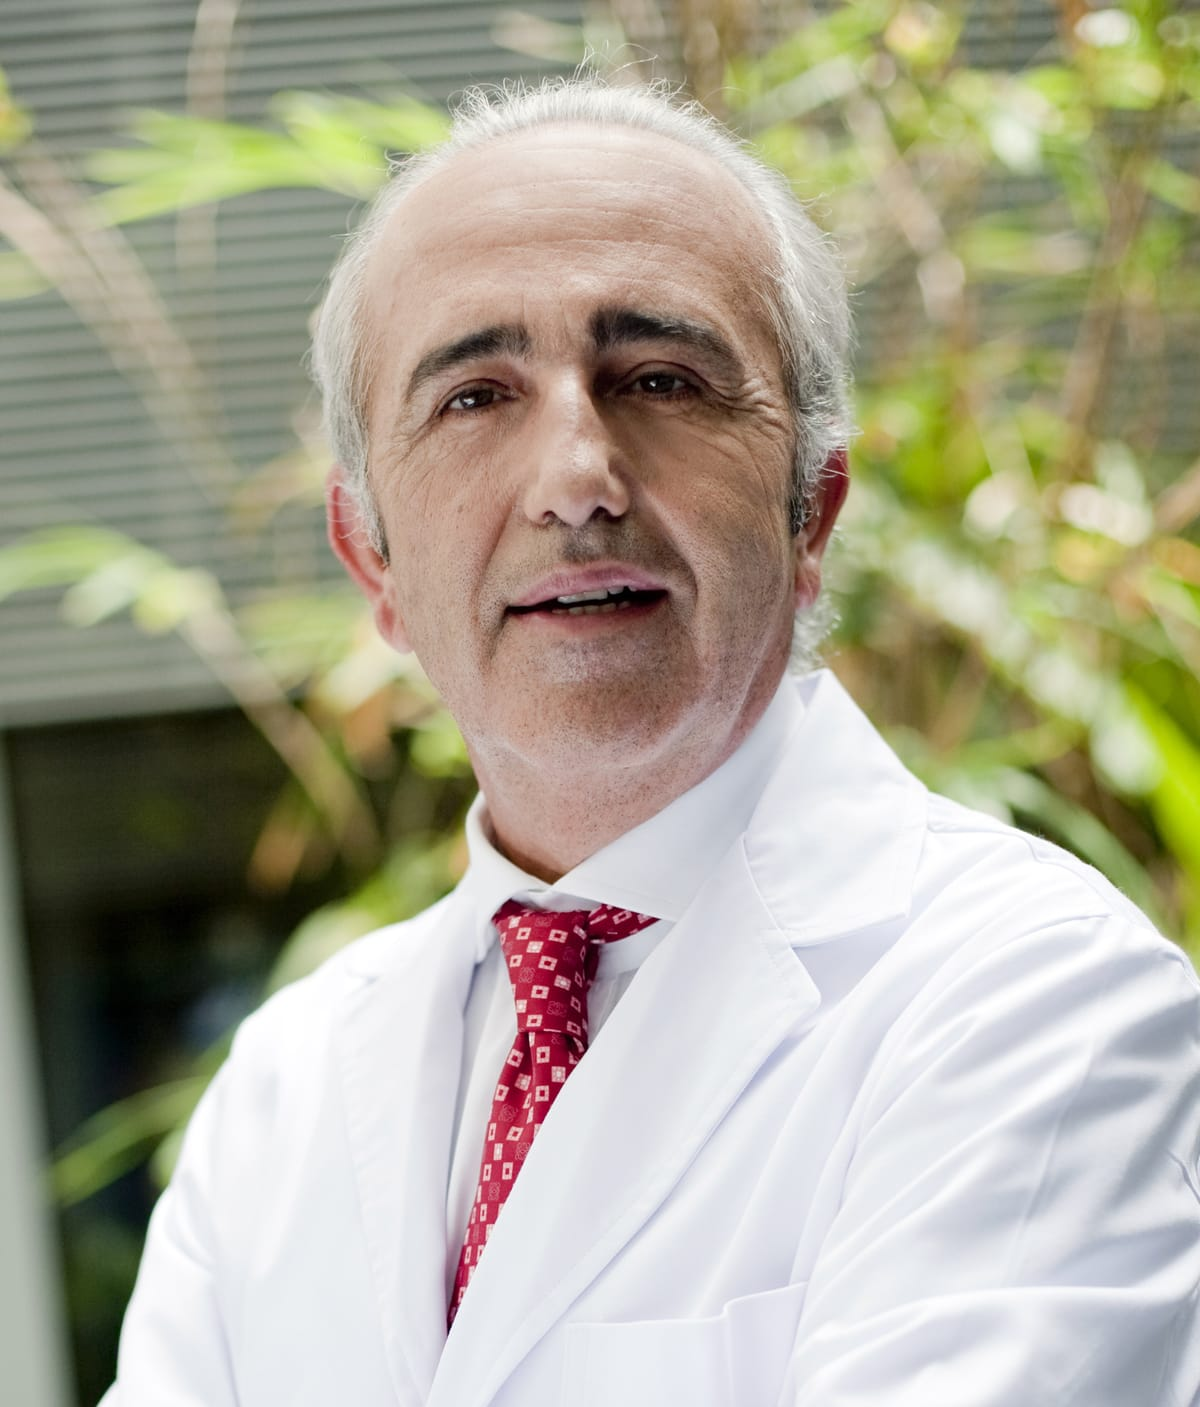 IVI established as the leading researcher in Obstetrics, Gynaecology and Reproductive Biology in Spain